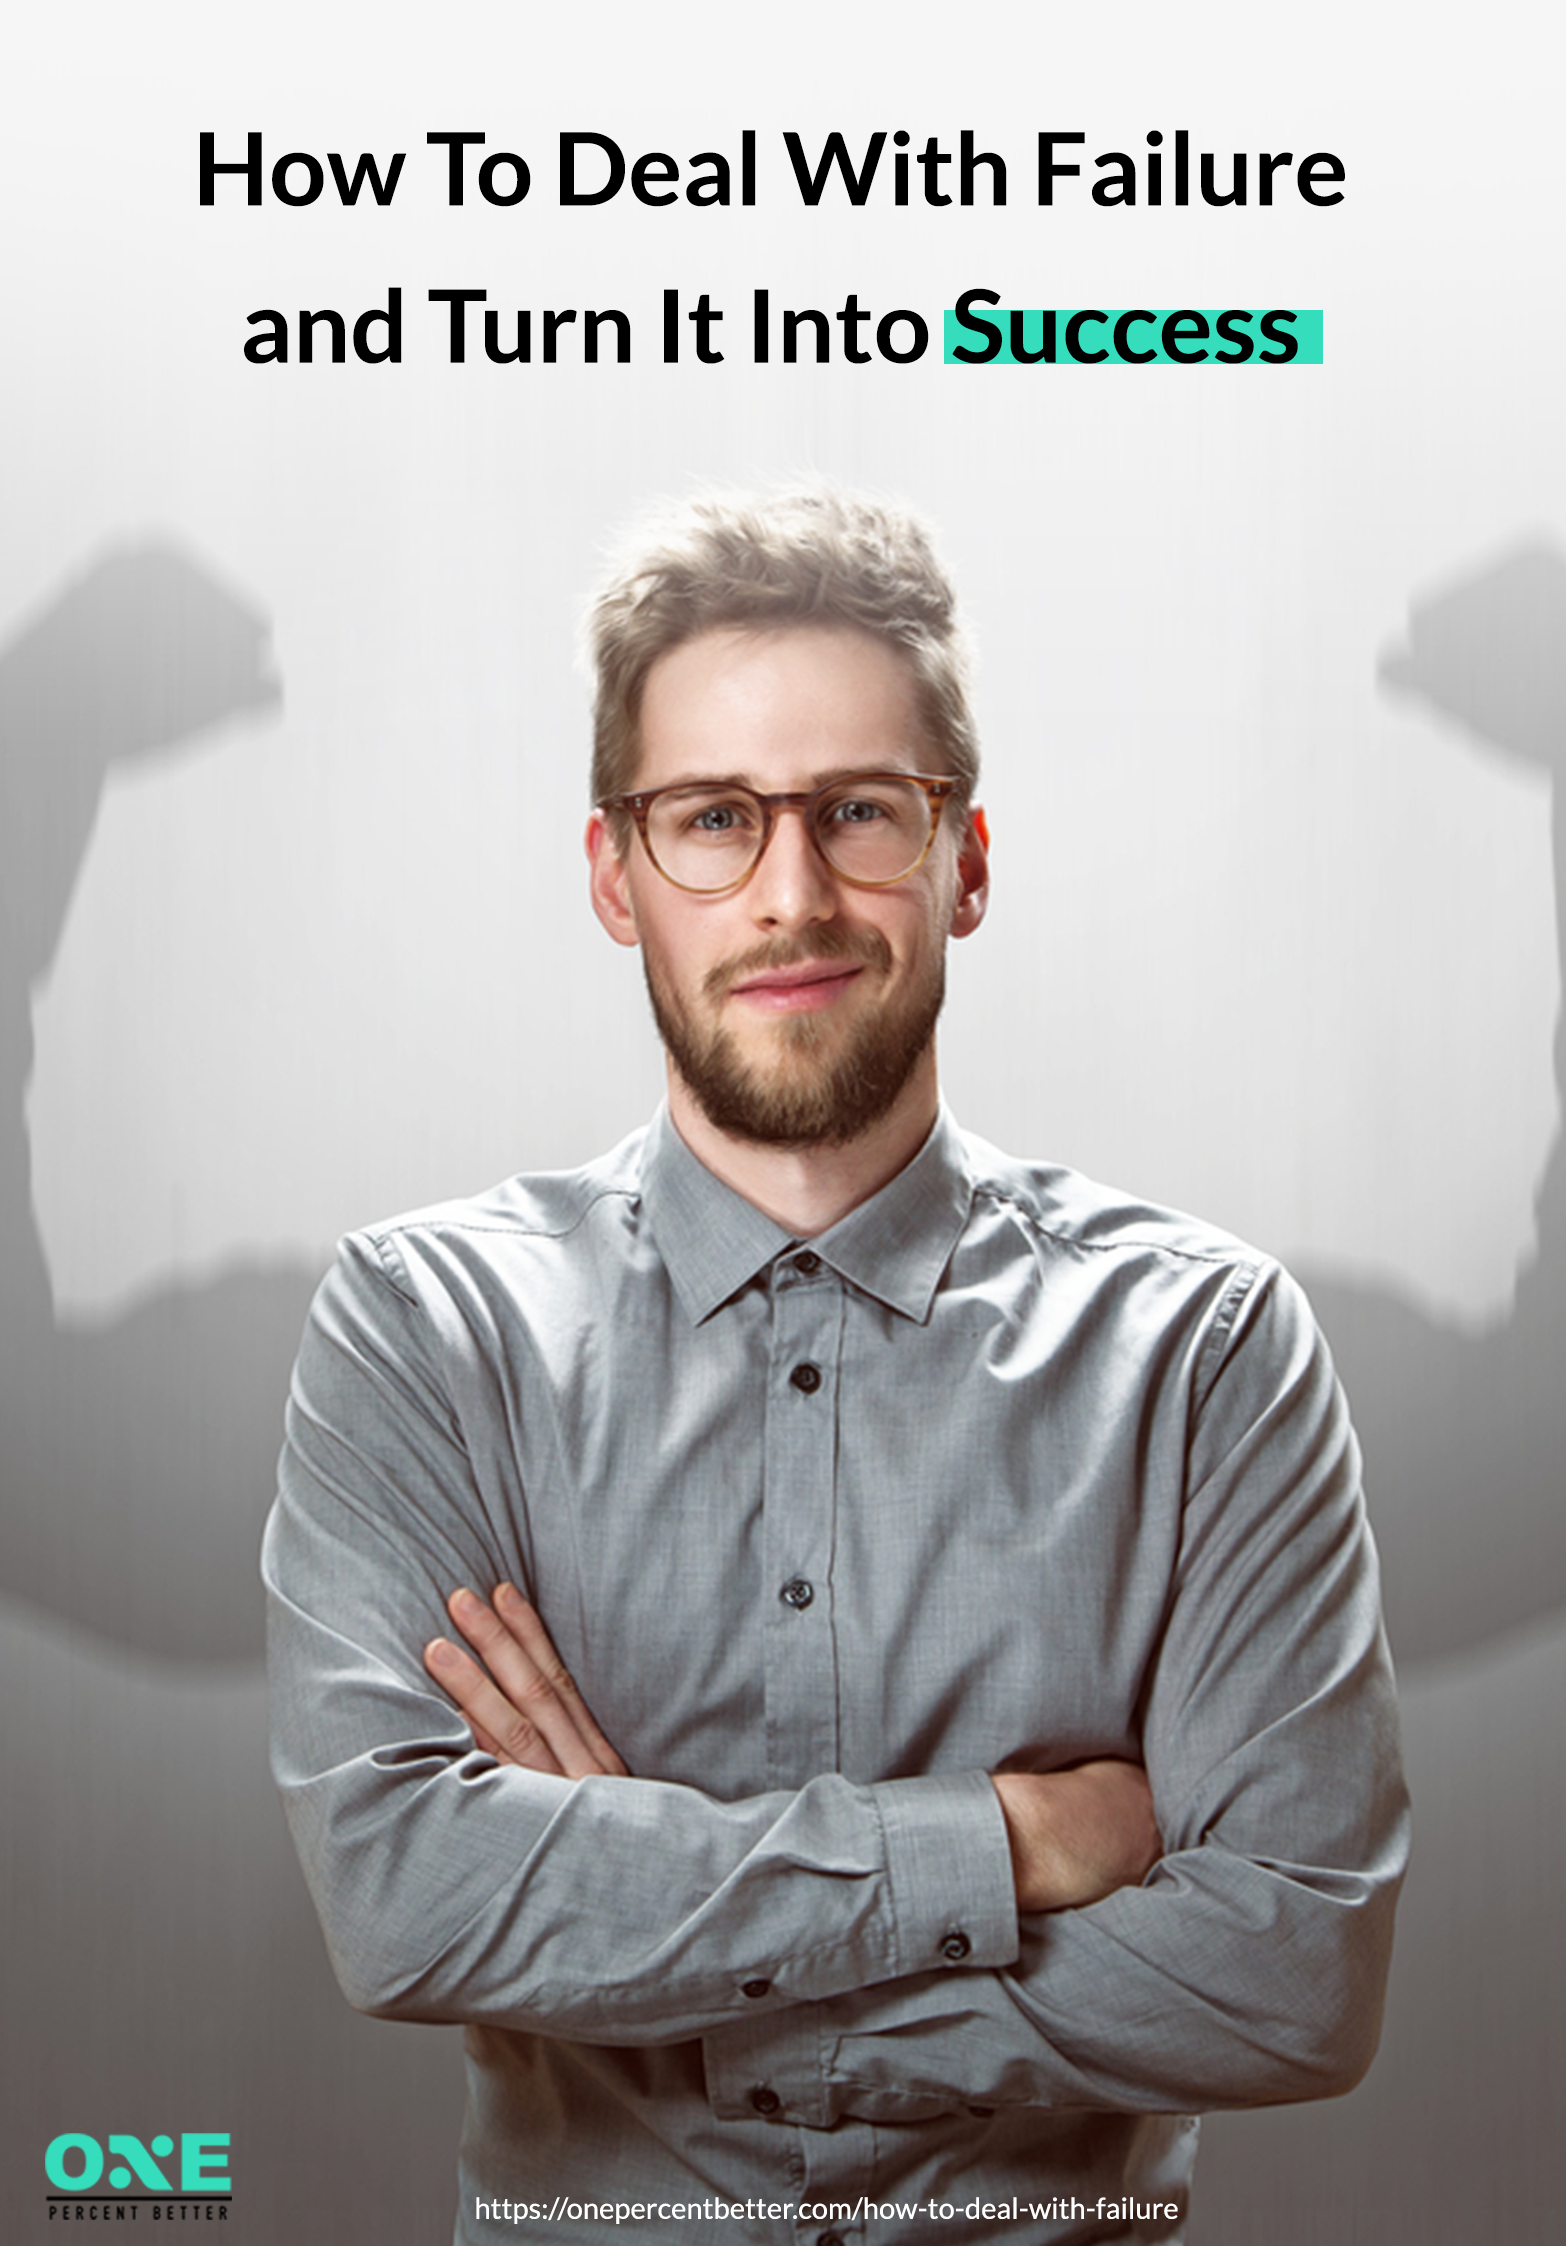 How To Deal With Failure and Turn It Into Success [INFOGRAPHIC] https://onepercentbetter.com/how-to-deal-with-failure/